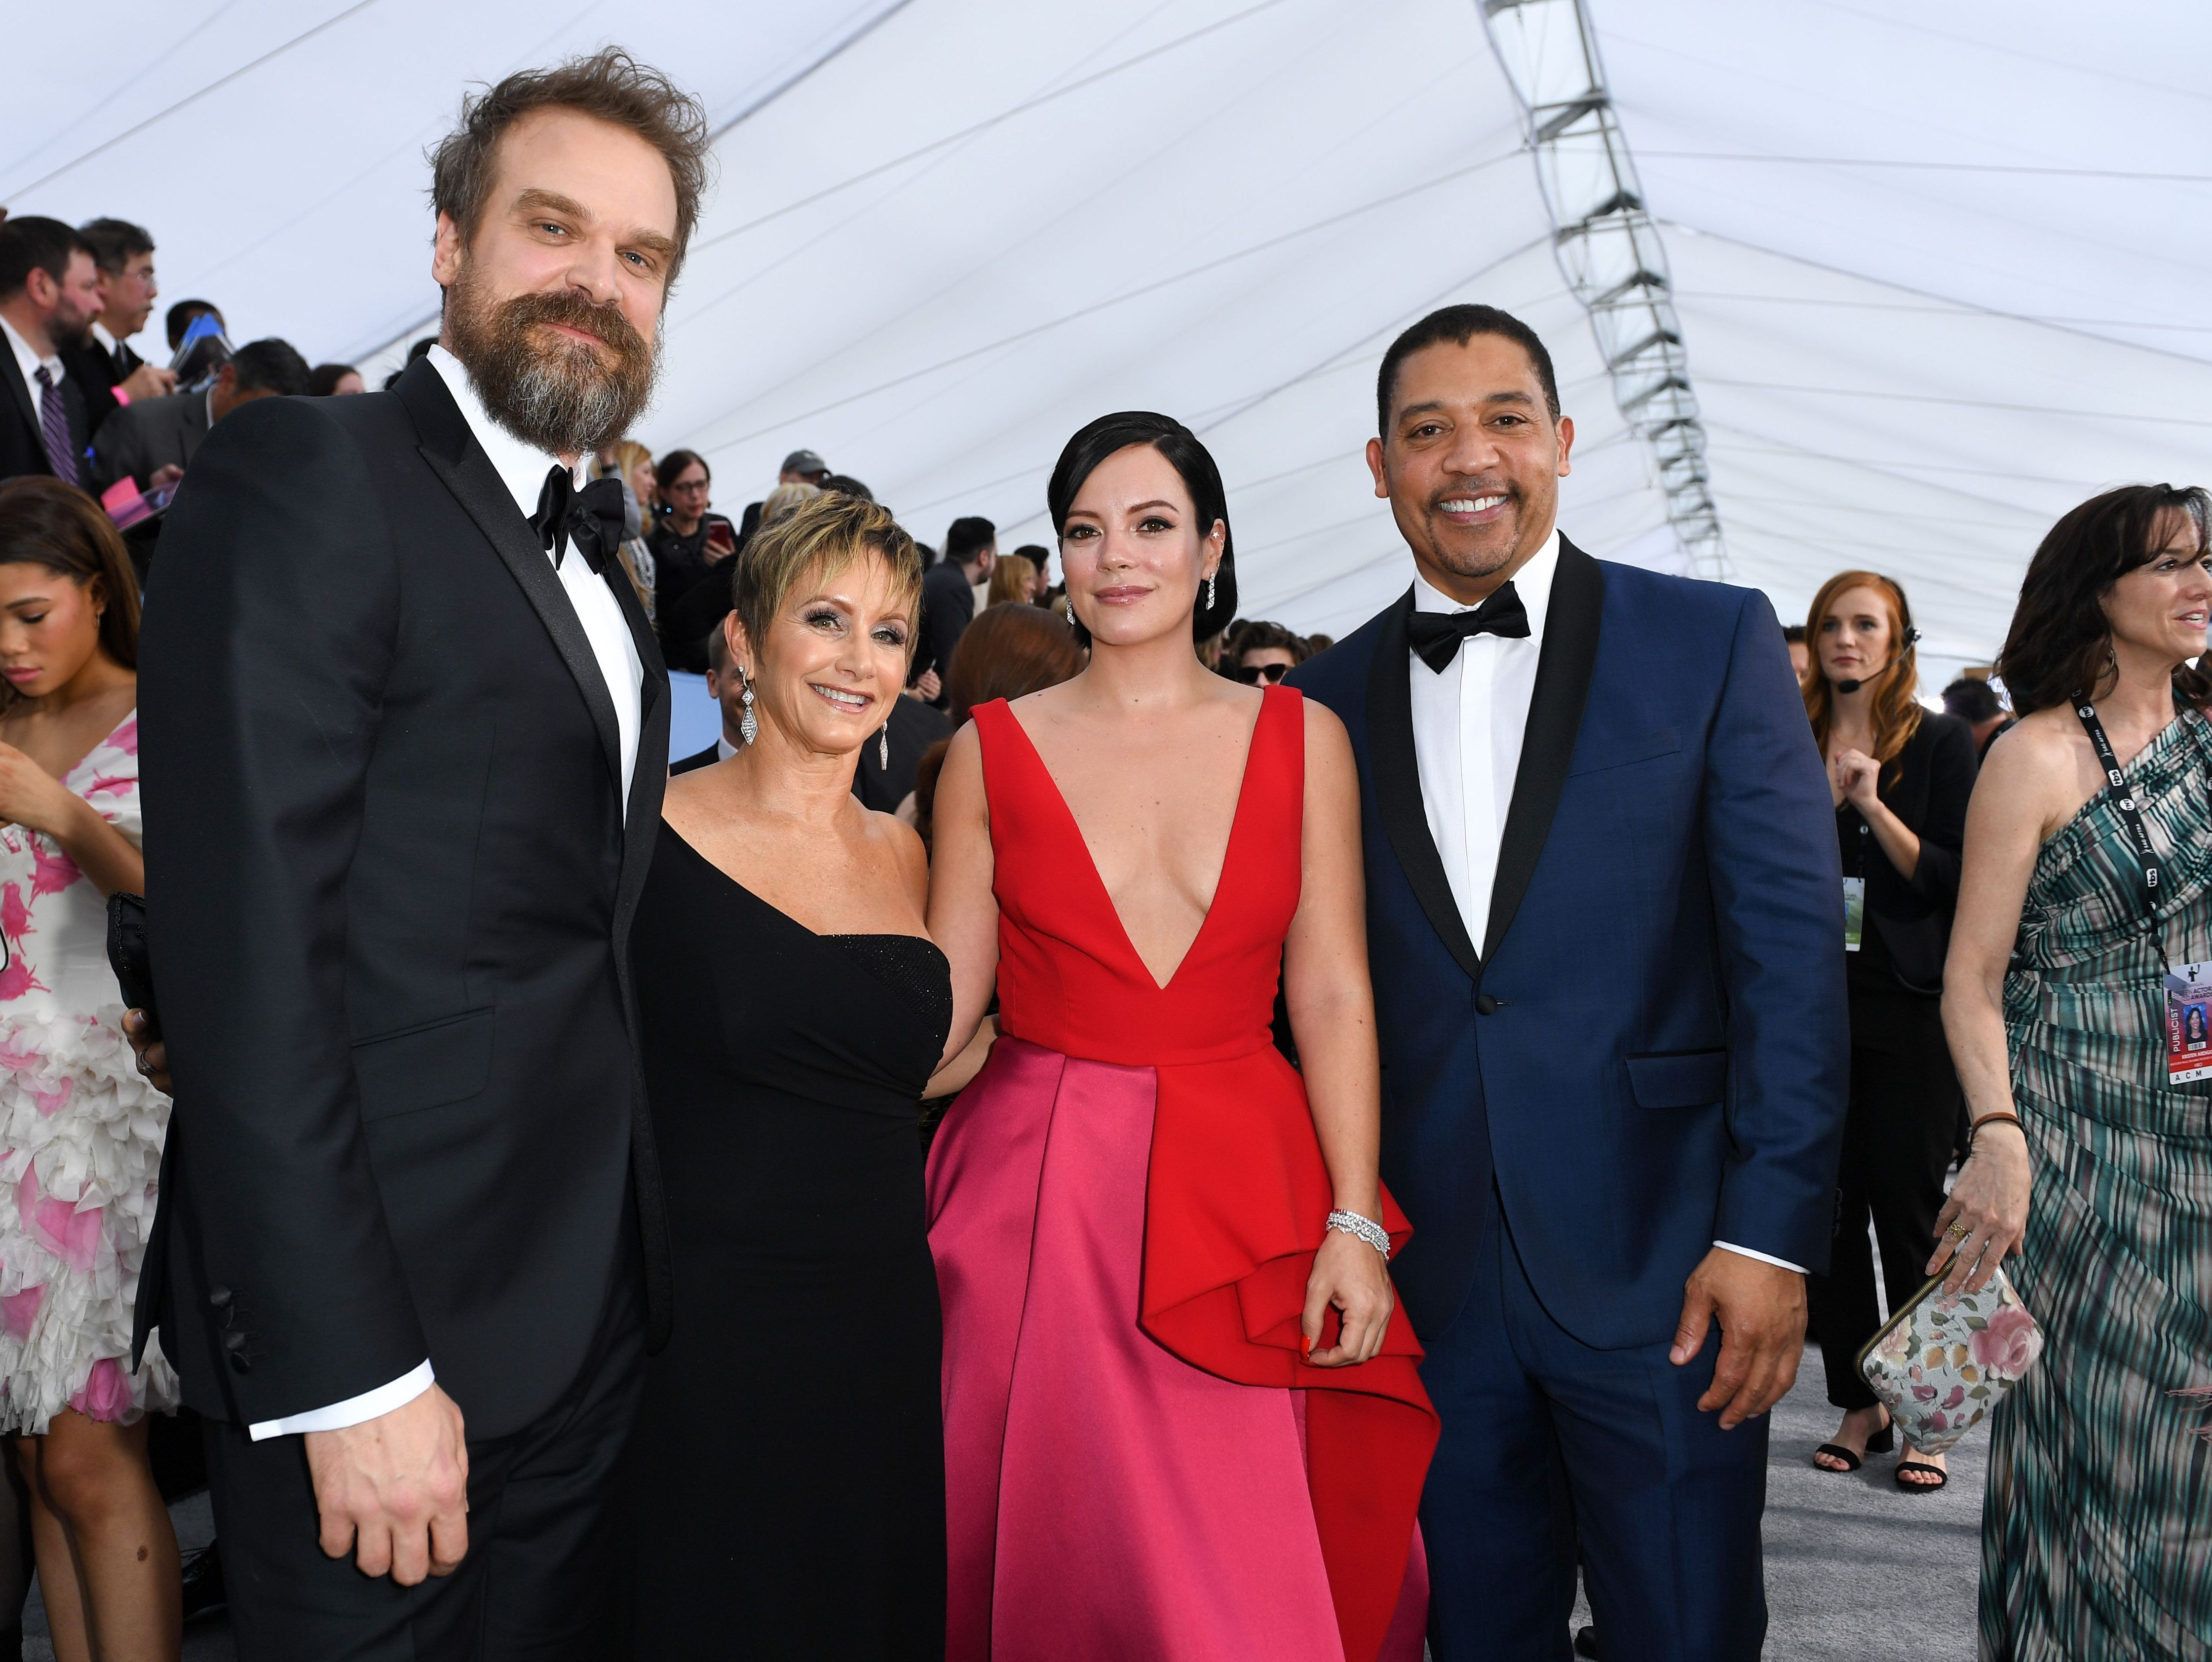 Lily Allen and David Harbour married in Las Vegas Report